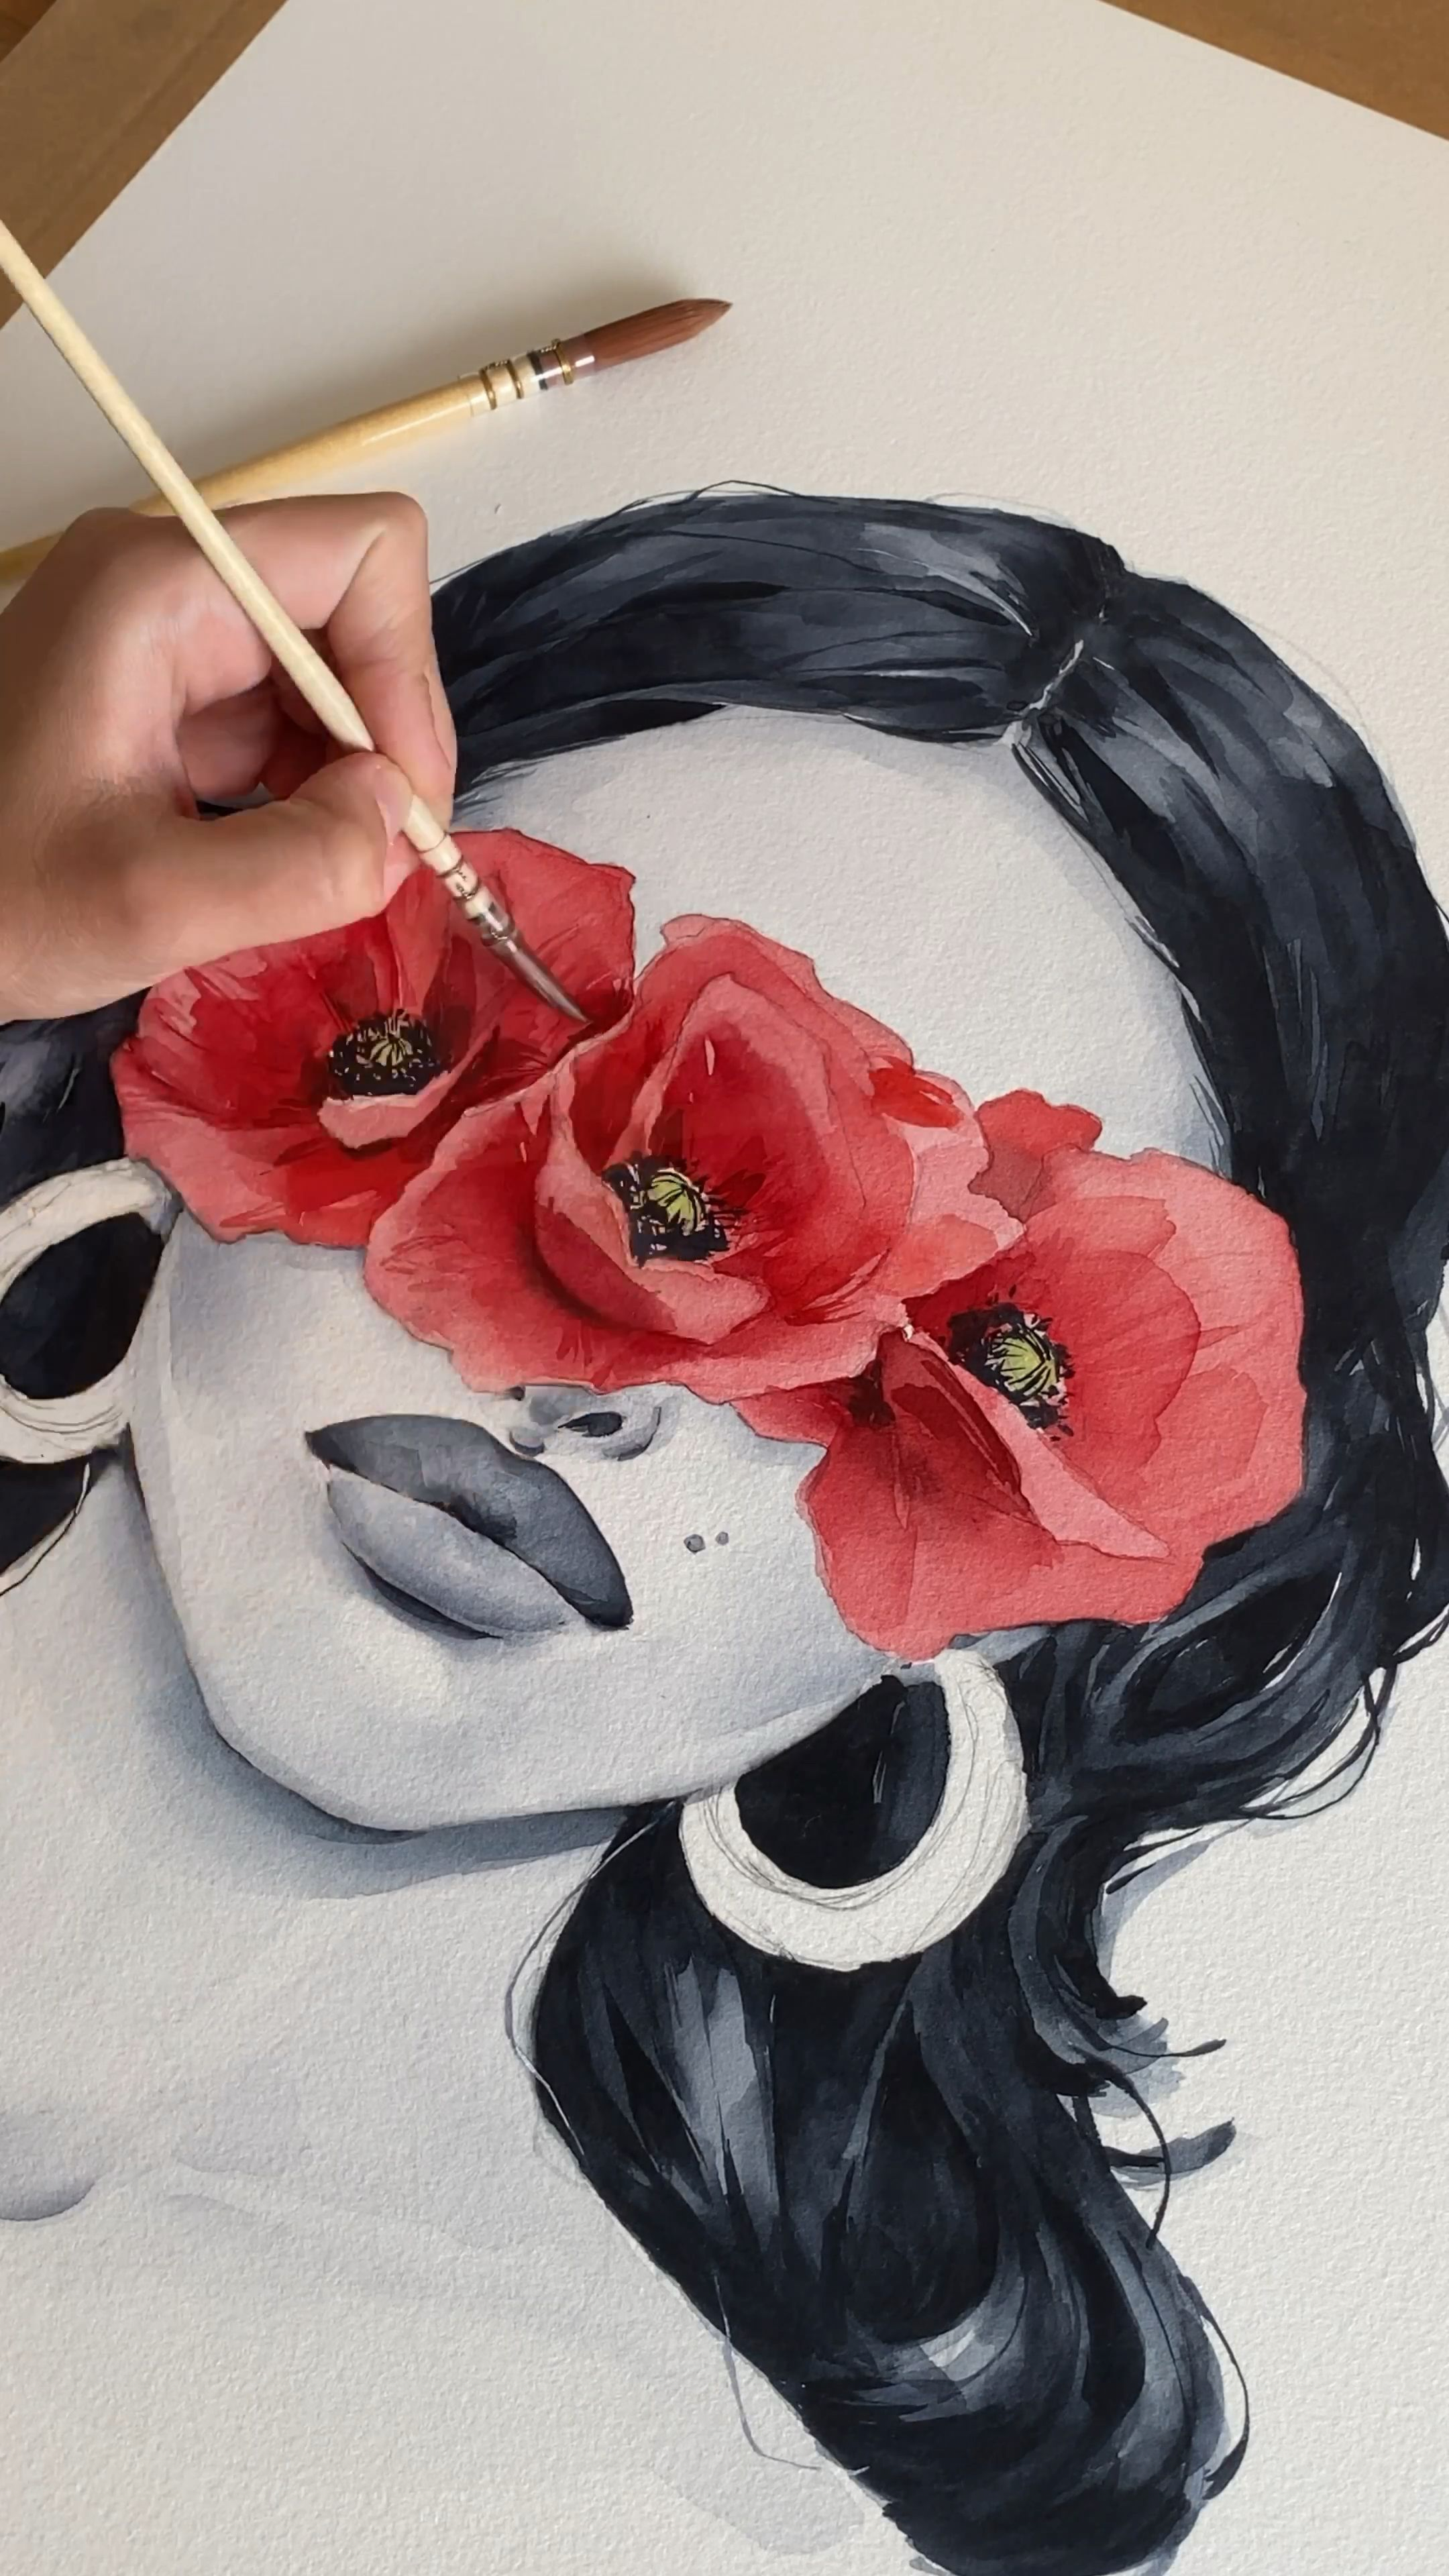 Poppy blindfolded ~ process by Polina Bright  #movietimes #watercolourpainting #watercolor #watercoloursketch #art #artwork #sydney #painting #polinabright #drawingideas #drawingtutorial